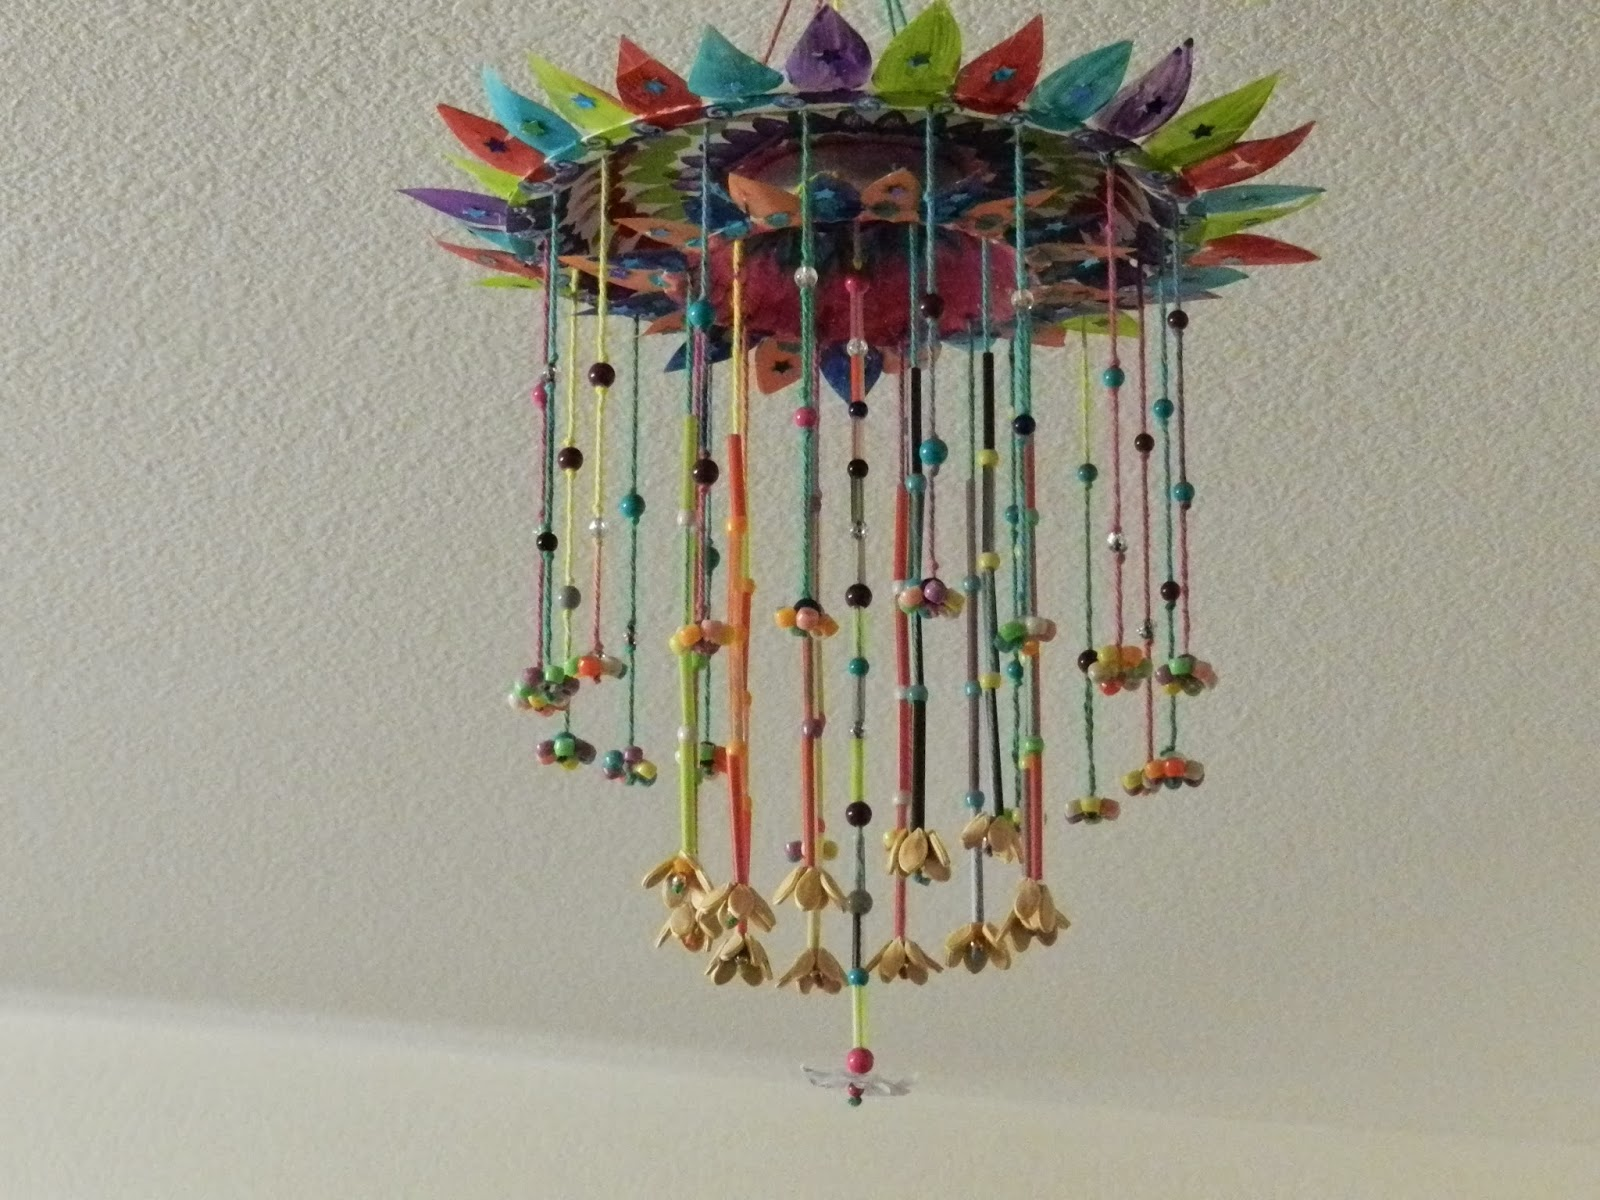 Creative diy crafts paper plate hanging craft with beads for Creative craft ideas with paper